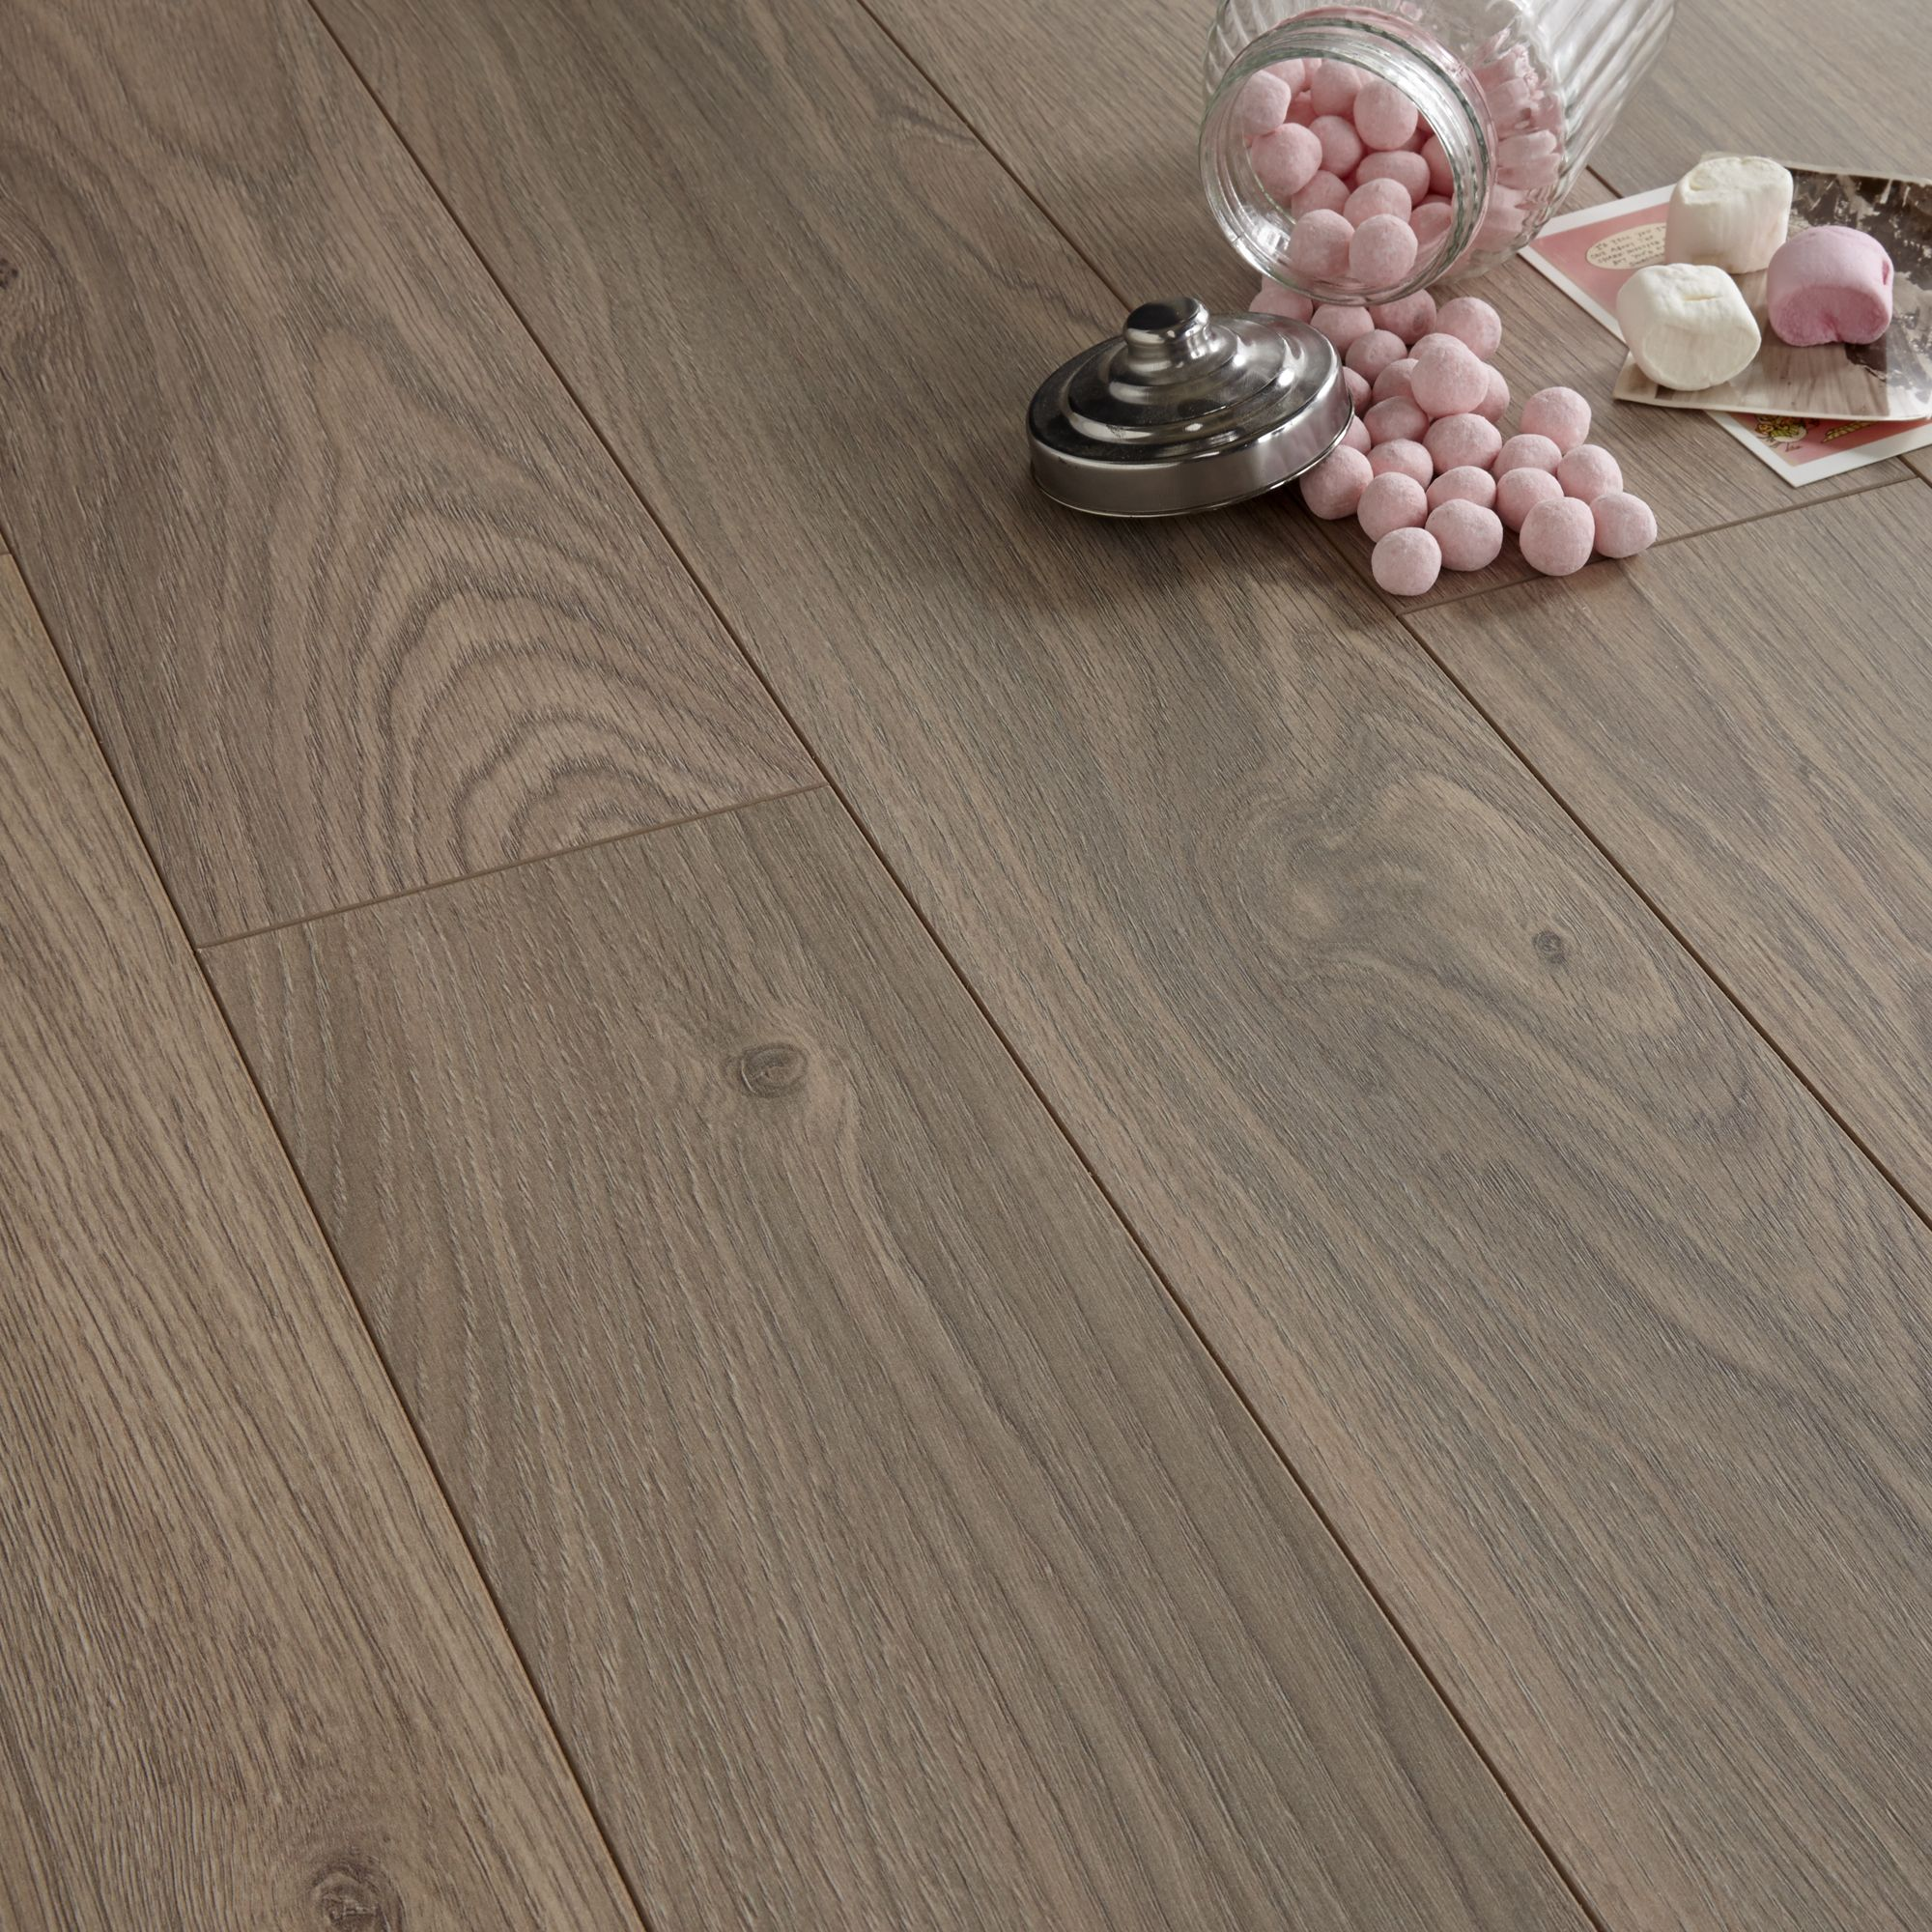 Arpeggio Natural Heritage Oak Effect Laminate Flooring 1 85 M² Pack Departments Diy At B Q